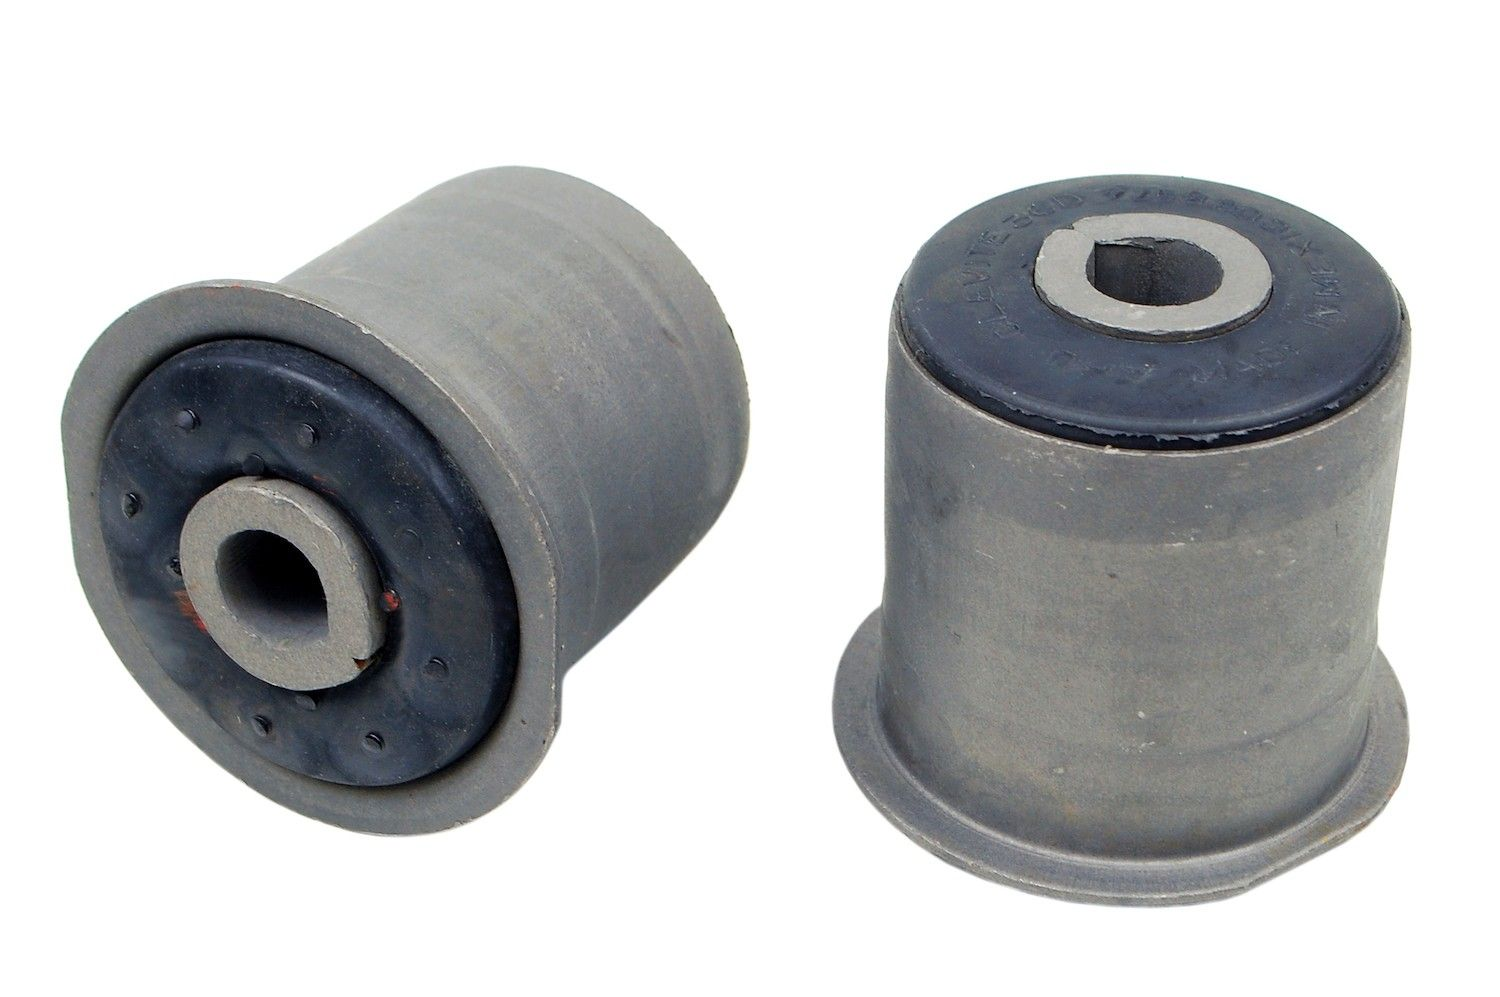 Dodge Ram 2500 Suspension Control Arm Bushing Kit Replacement Upgrade 1994 Front Lower Mevotech Ms25450